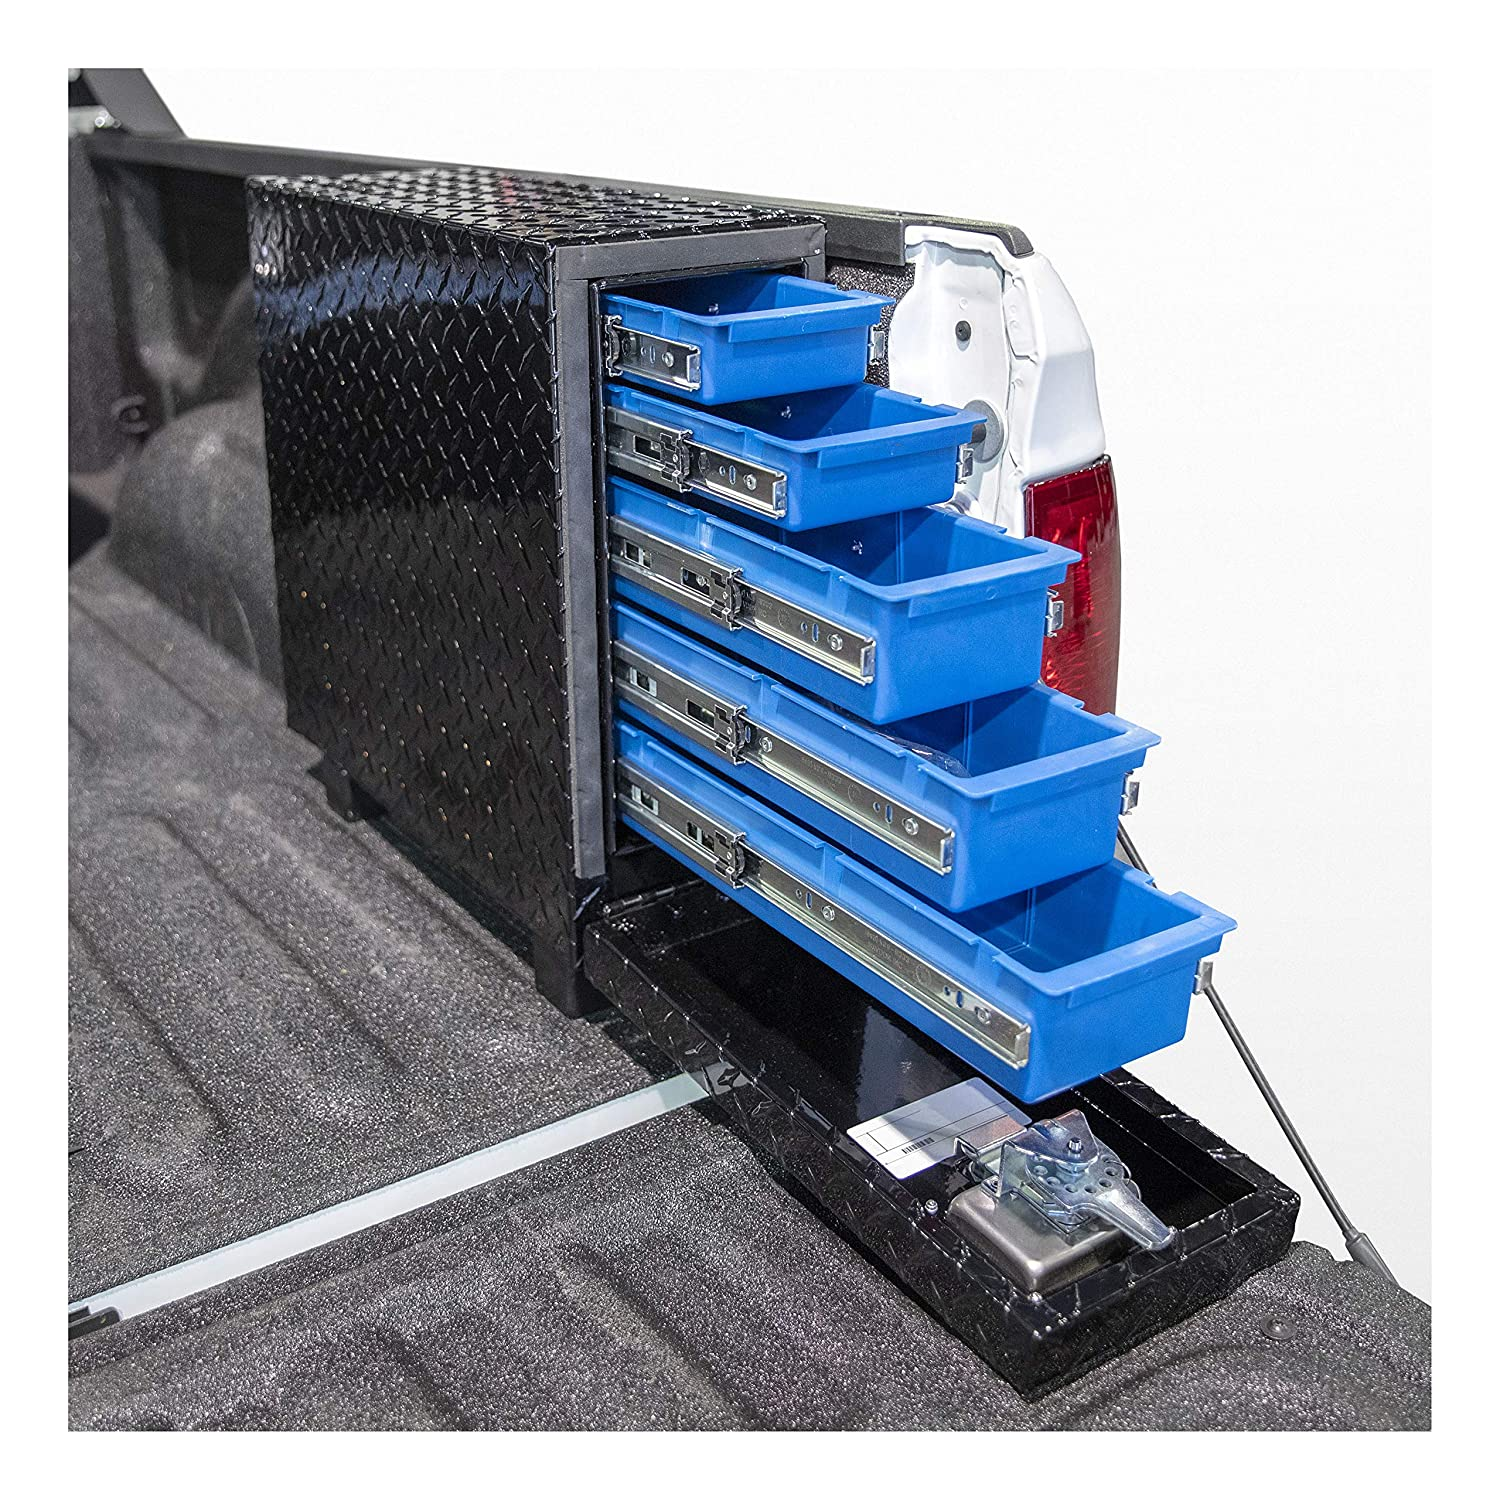 UWS EC20052 22-Inch Gloss Black Aluminum Truck Bed Tool Box with 5 Drawers